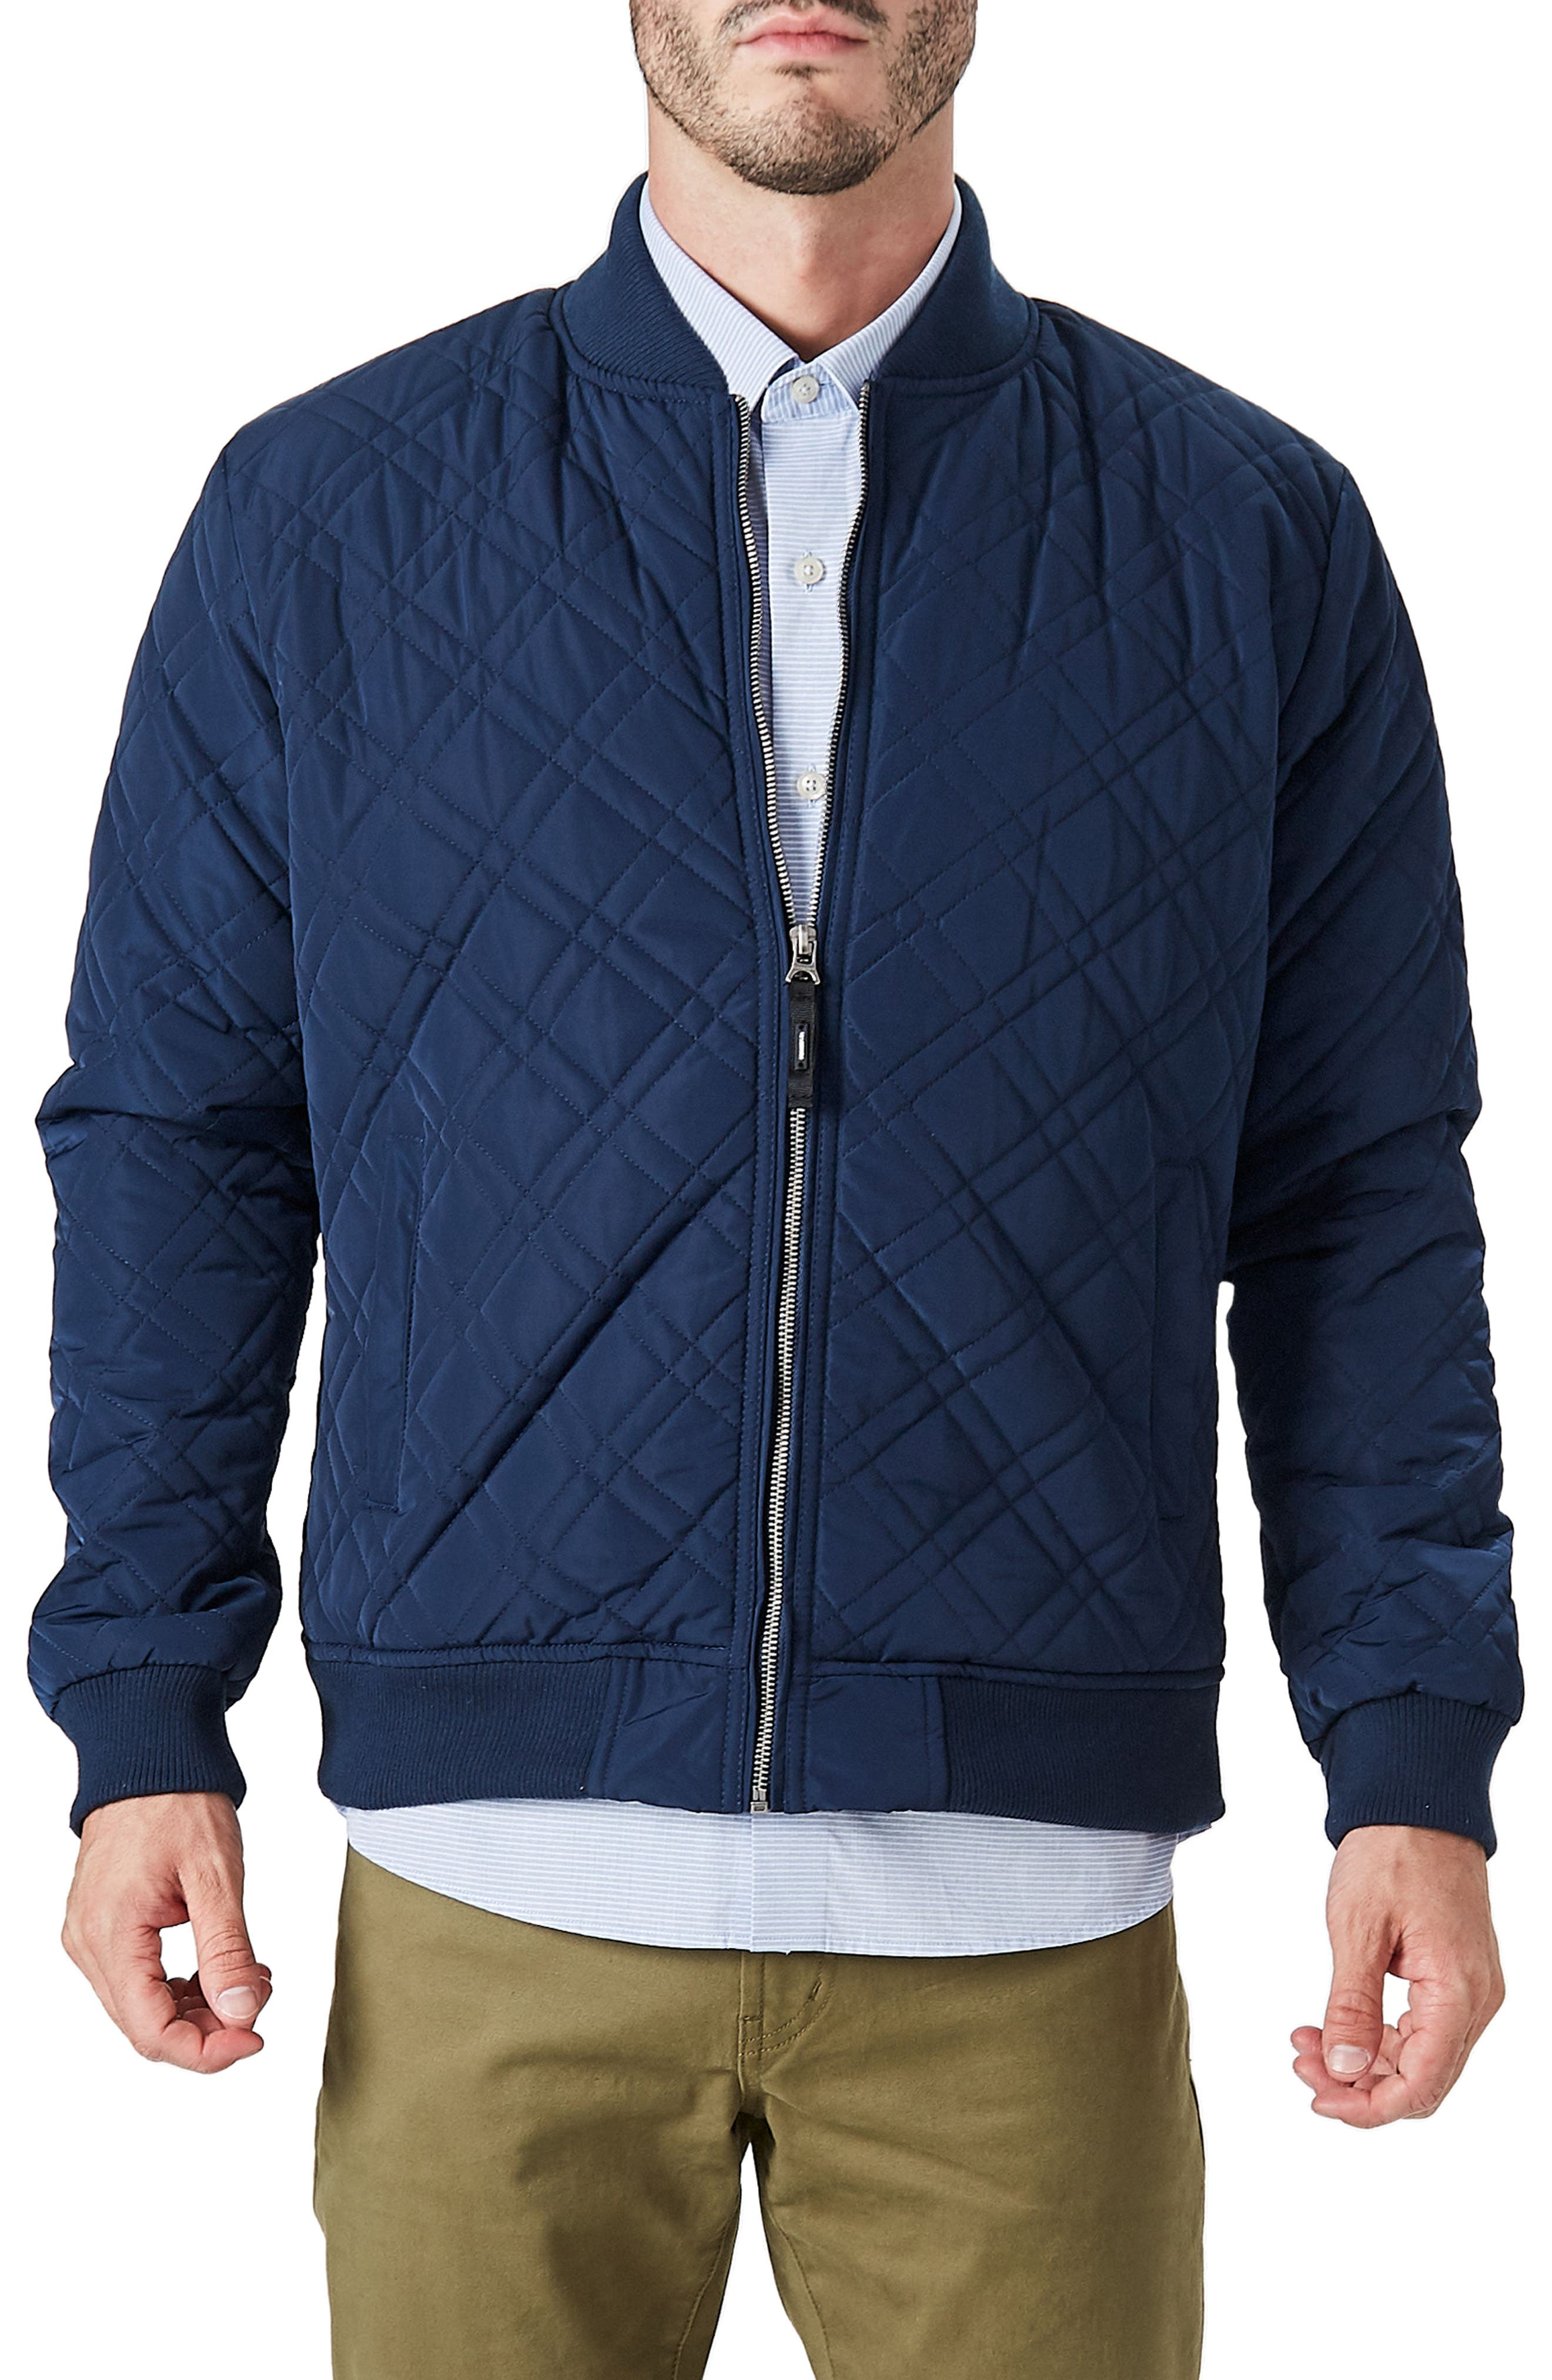 Arca Quilt Jacket,                         Main,                         color, Navy